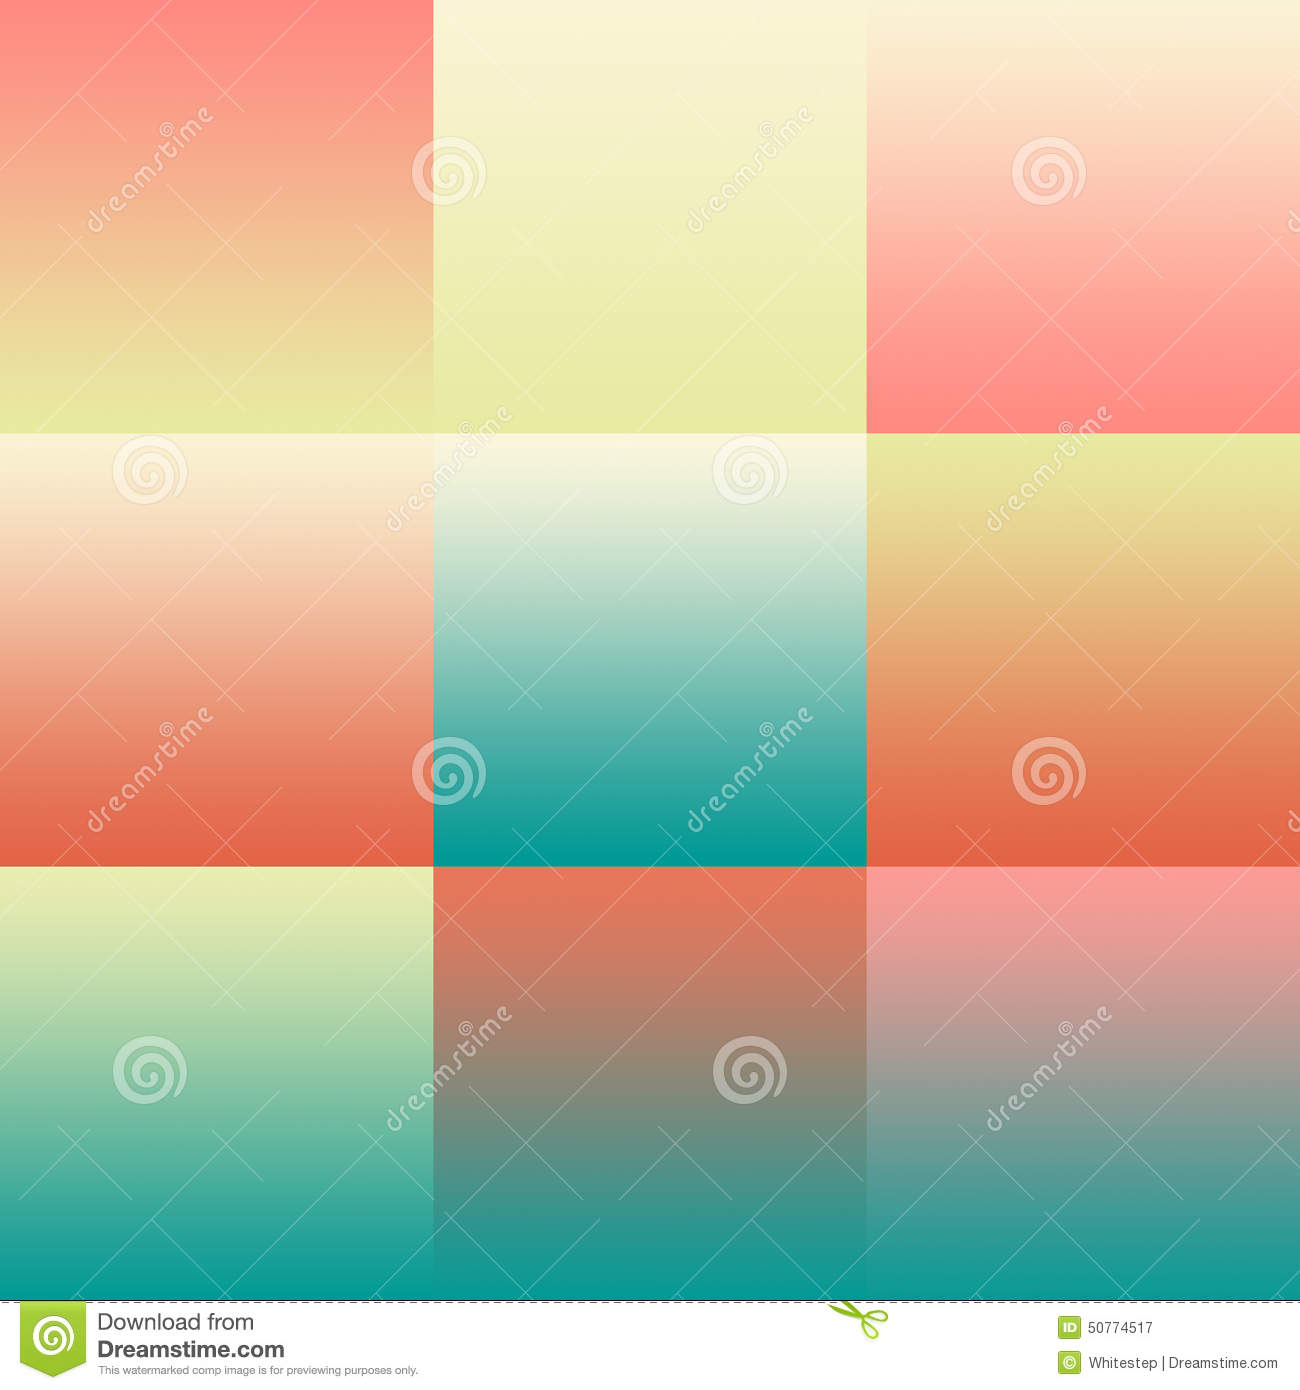 Book Cover Background Java : Set of colorful pastel abstract backgrounds gradients